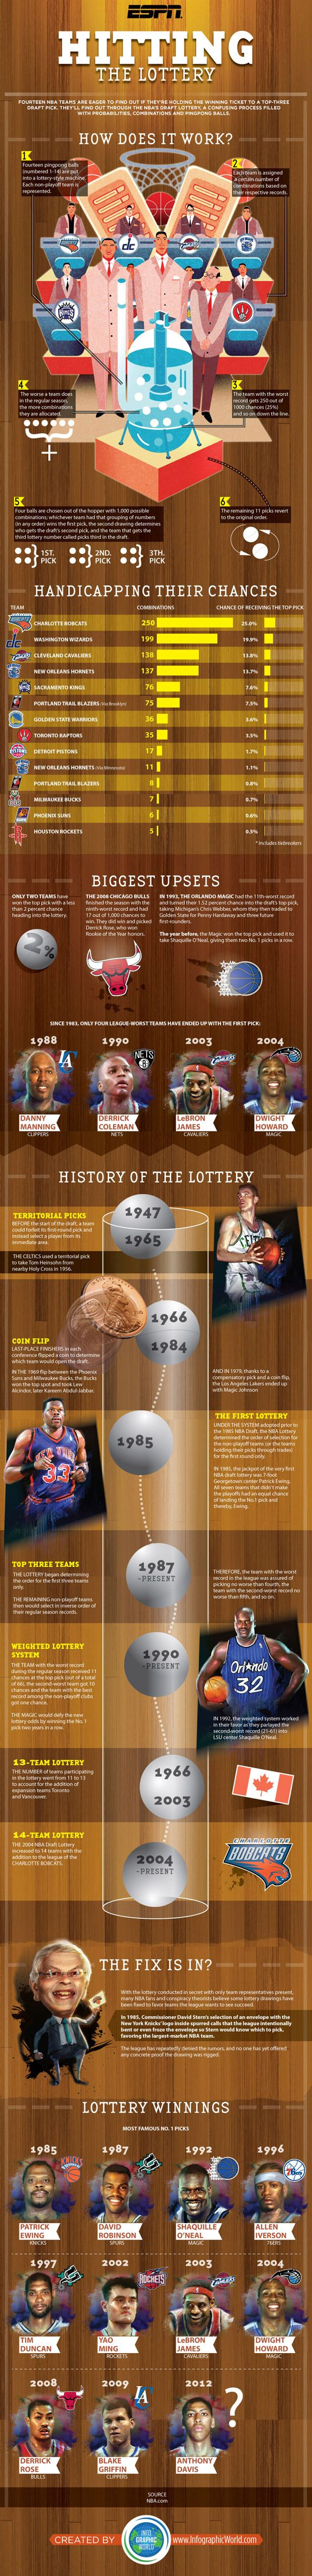 The Ultimate #NBA Draft Lottery Infographic es.pn/KImT37 /via @ESPNPlaybook @cubfancurt